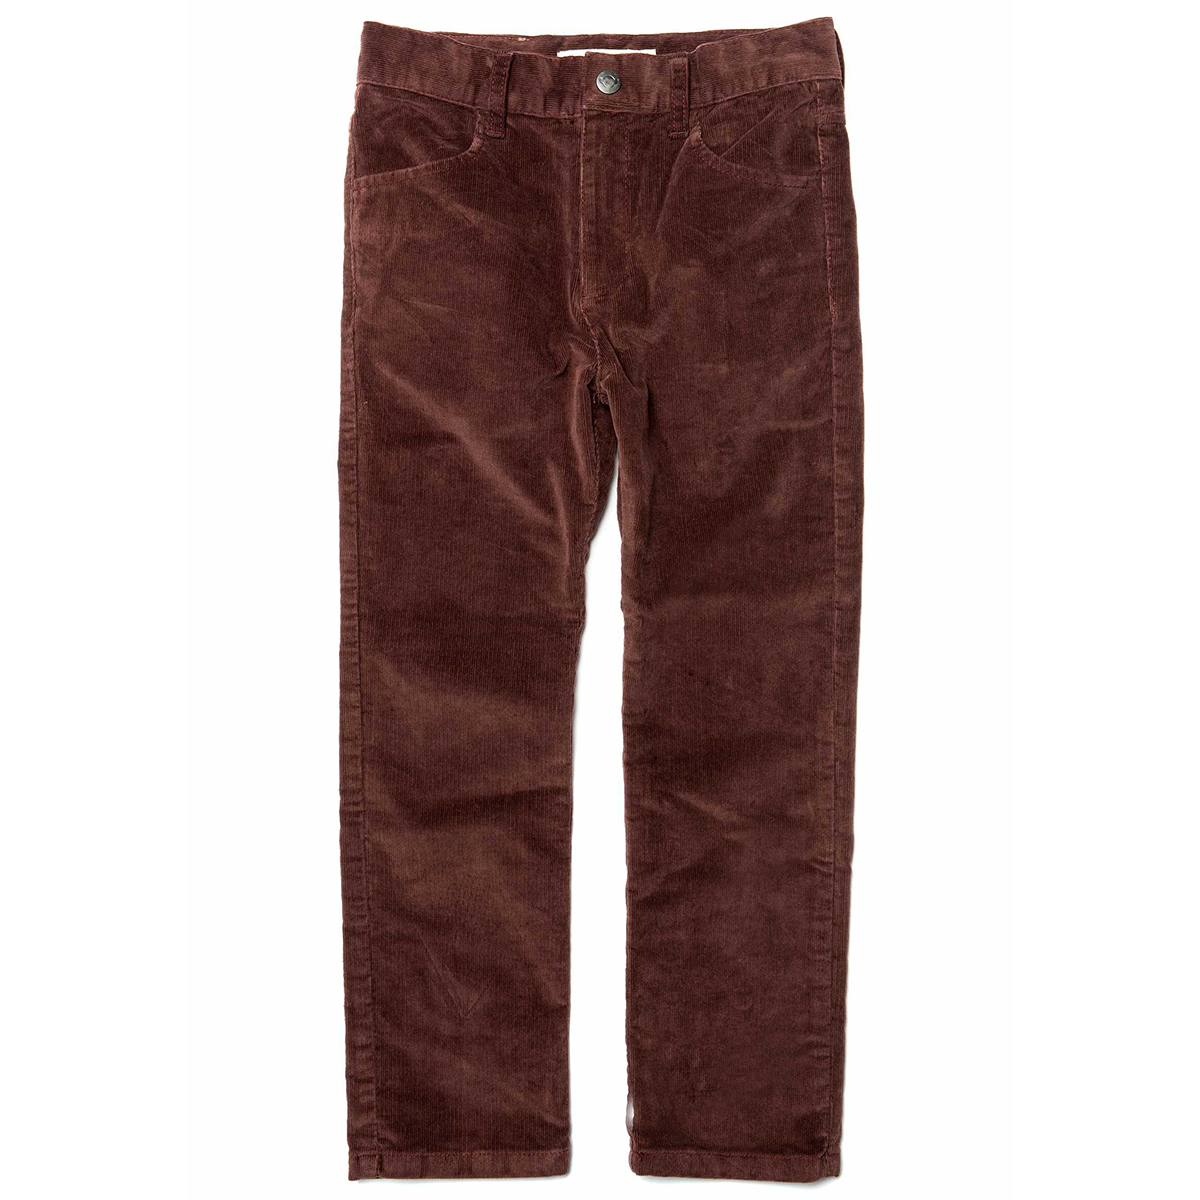 Appaman Skinny Cord Pants in Burgundy